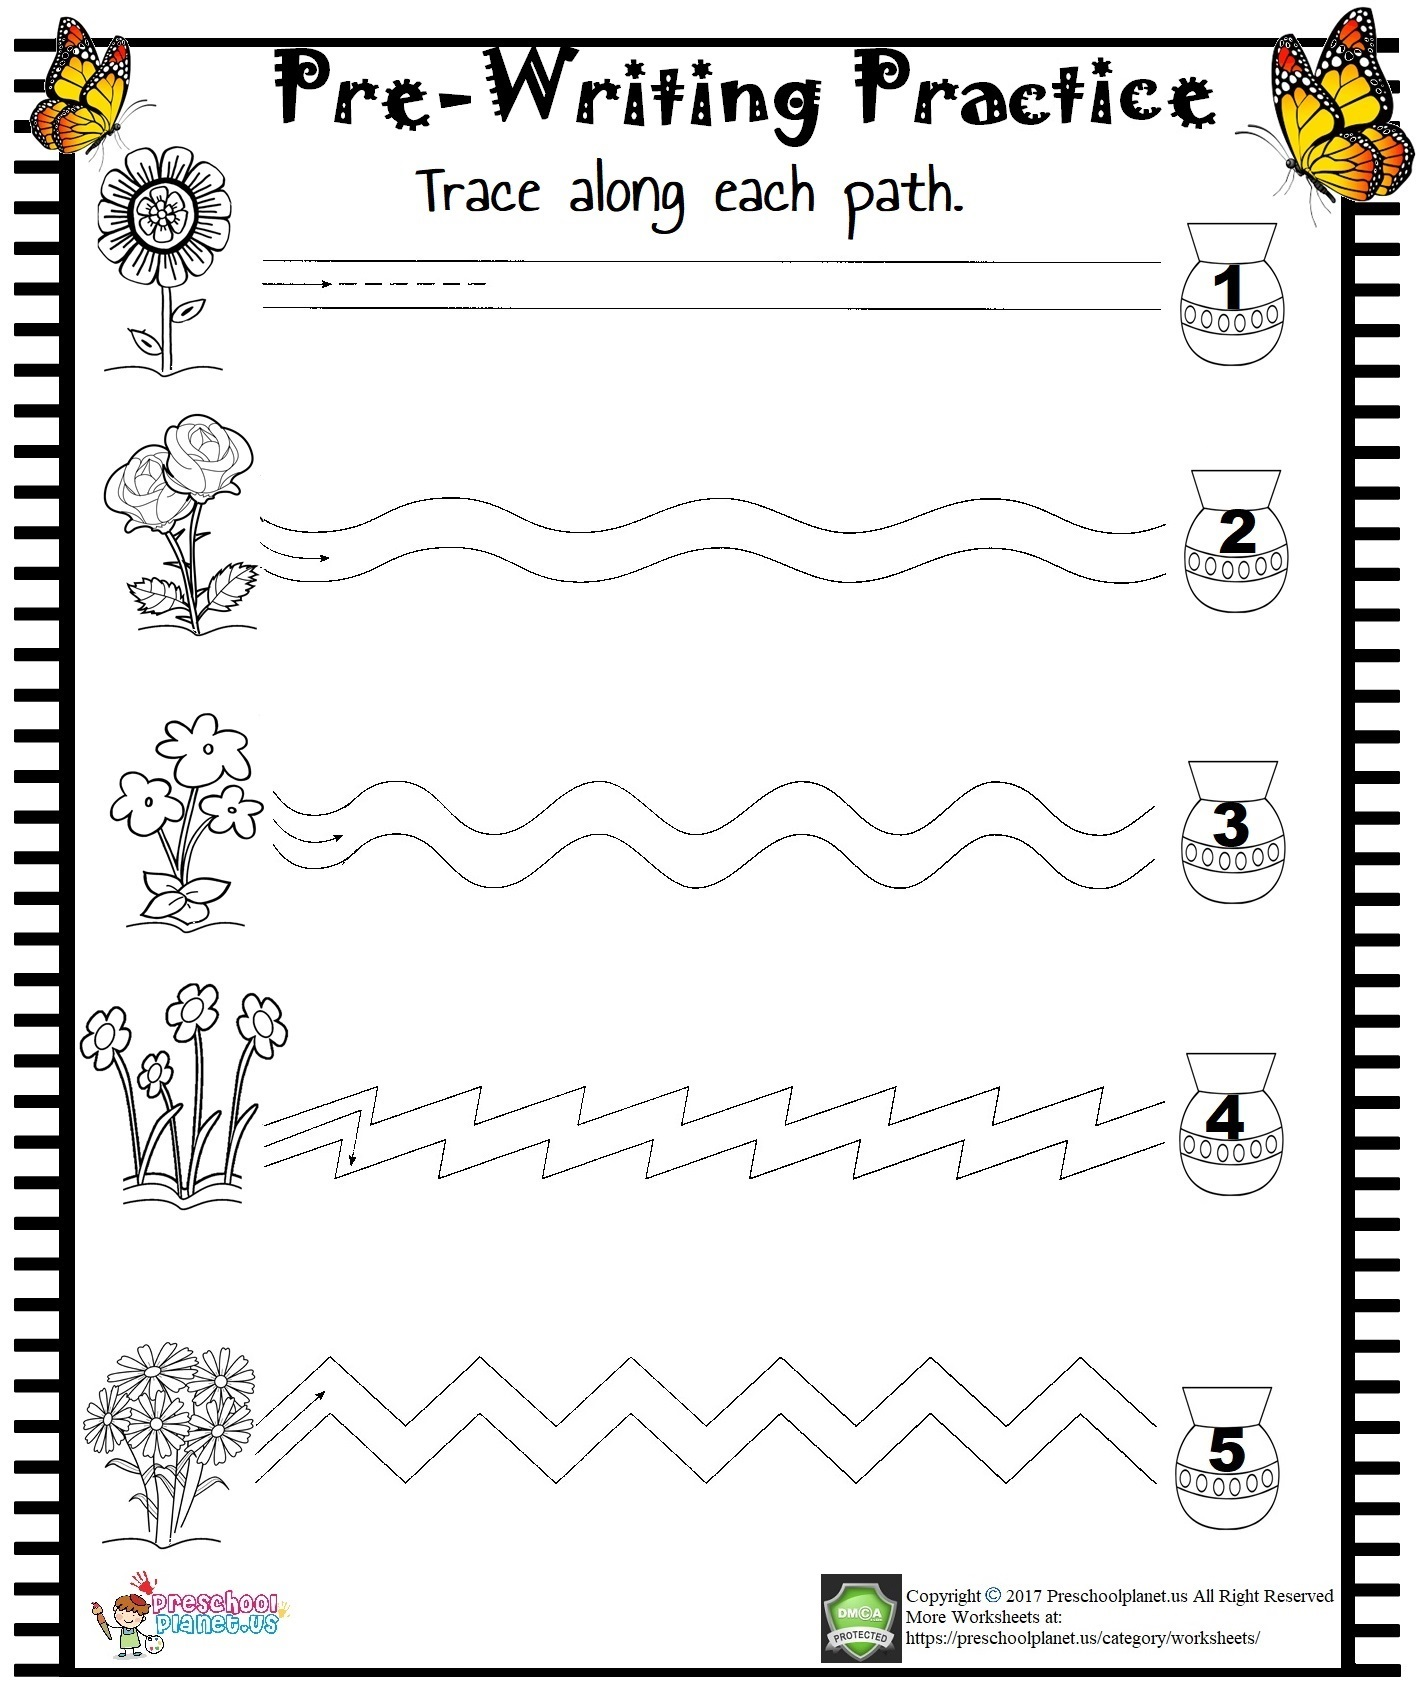 Pre-Writing Practice Worksheet